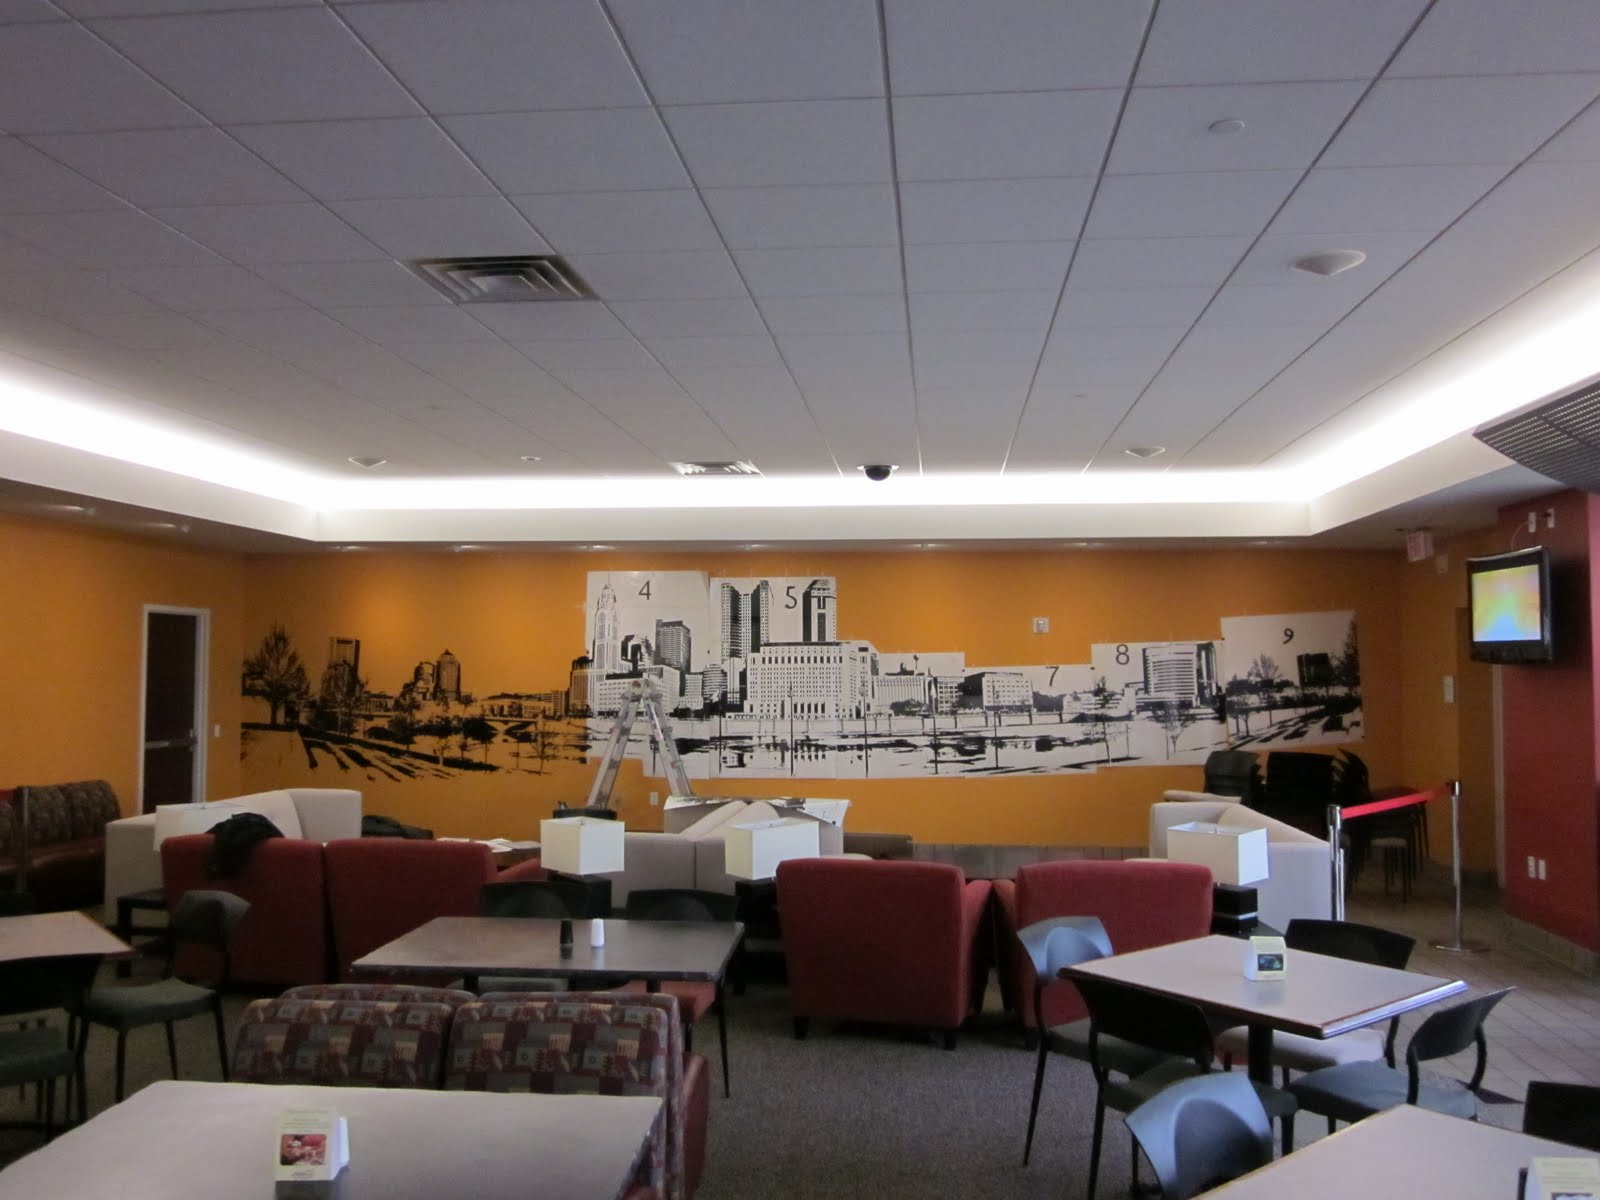 Wall Murals and Graphics Buckeye Sign Blog The blog for